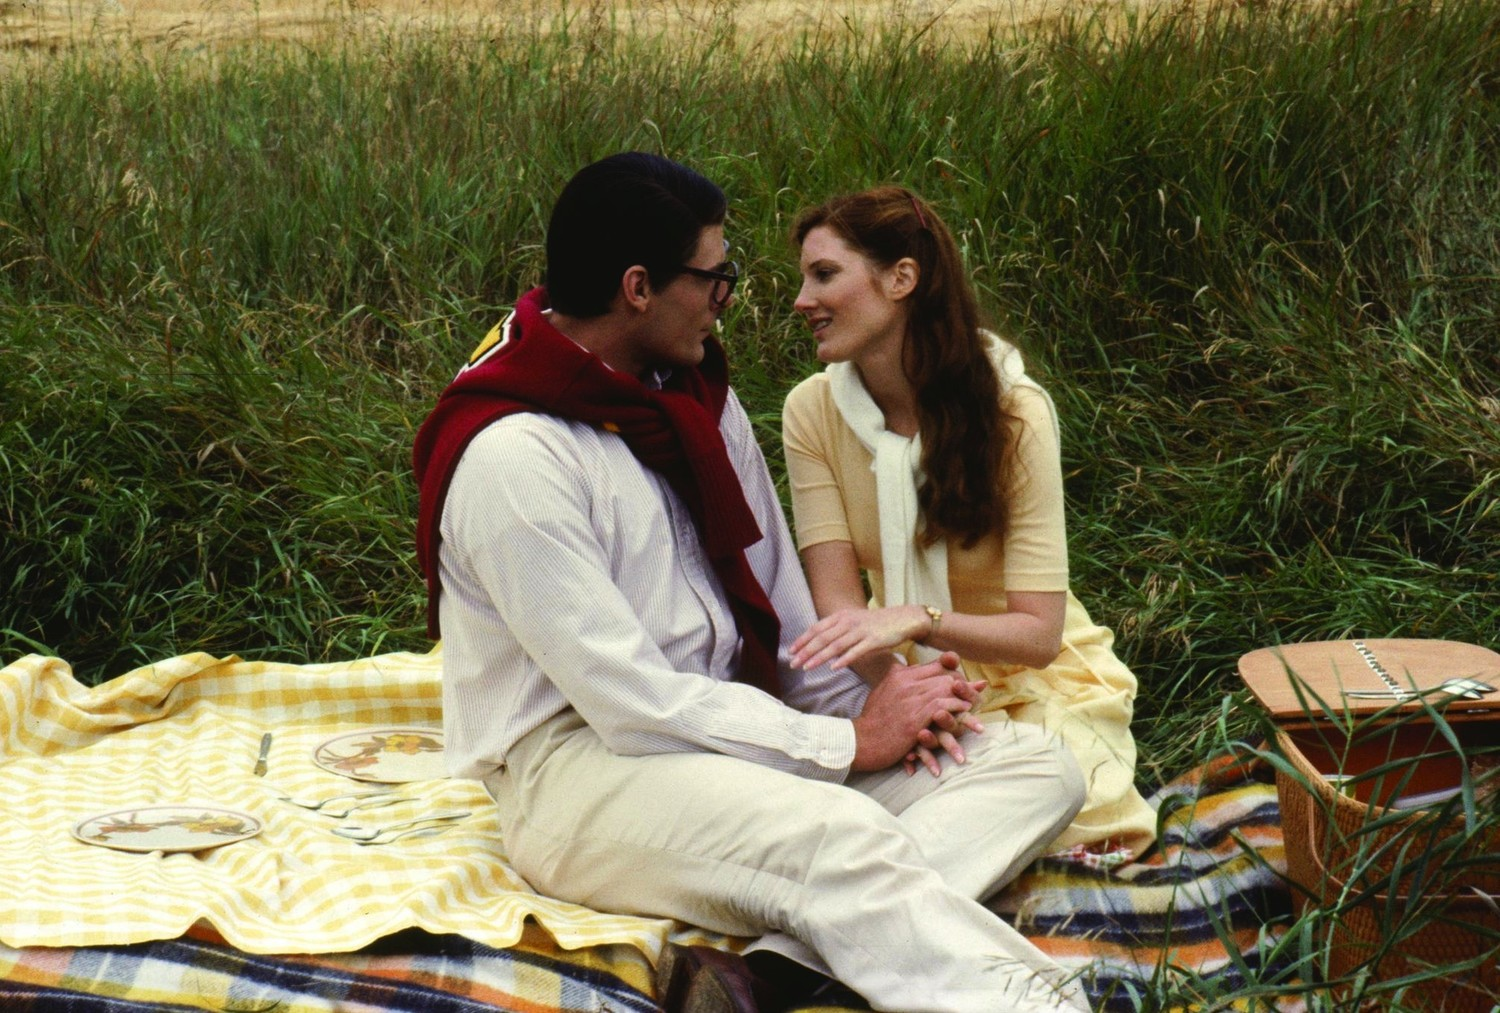 Clark Kent (Christopher Reeve) reconnects with Lana Lang (Annette O'Toole) on a return to Smallville in Superman III (1983)